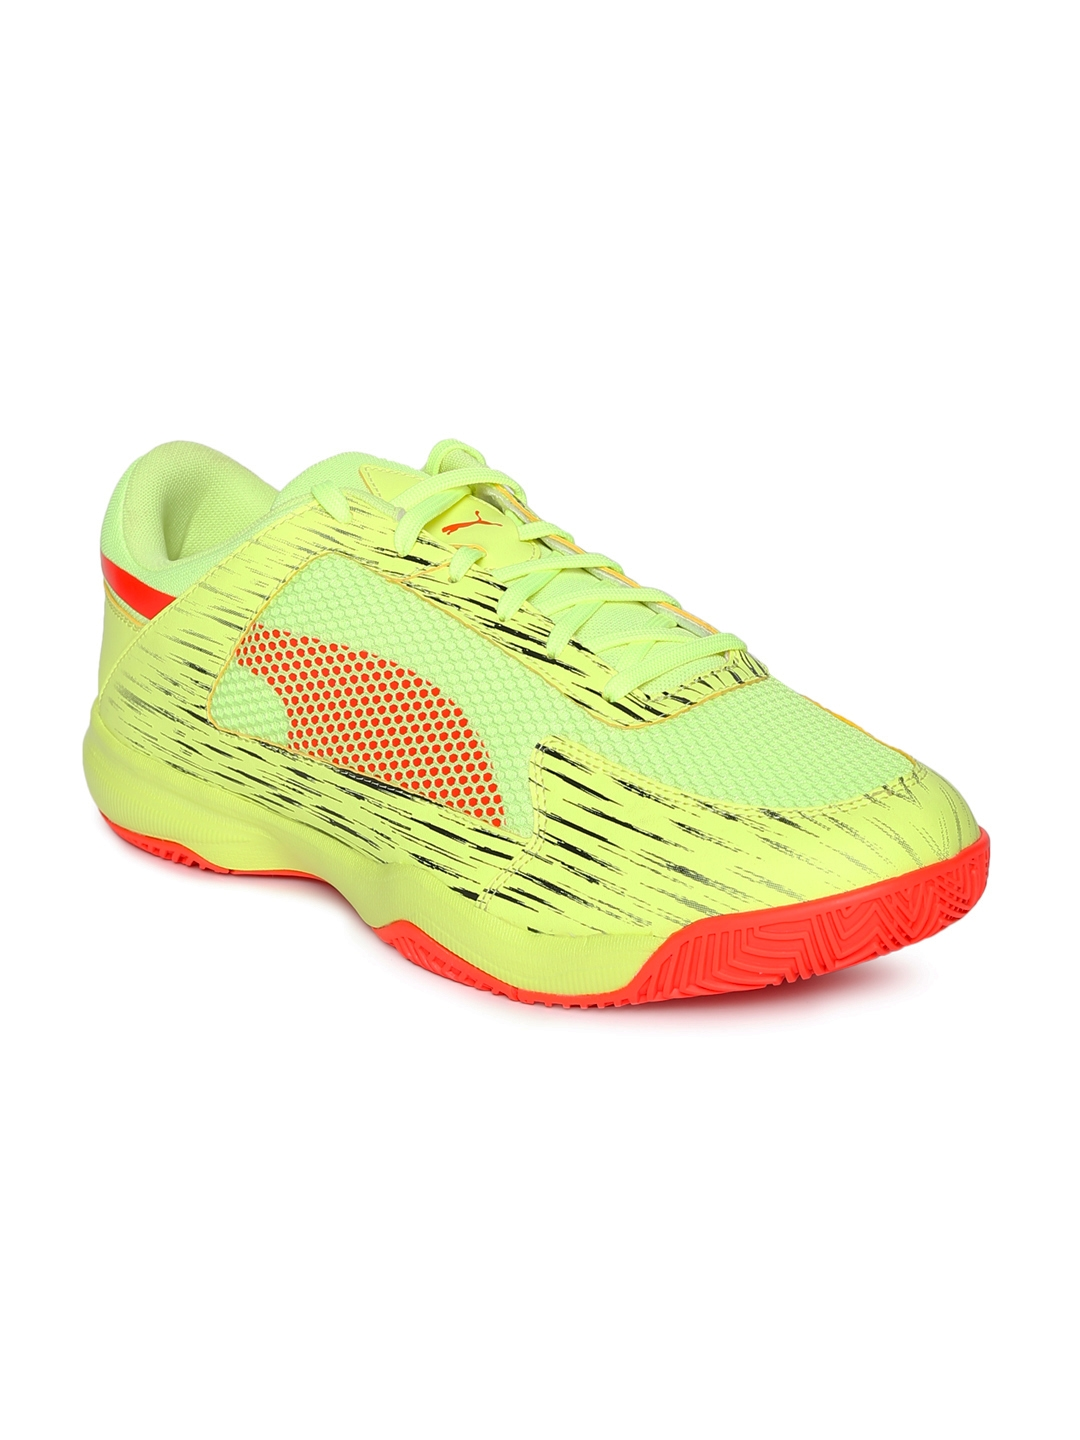 dadbfc1fad5bb4 Buy Puma Yellow EvoSPEED Indoor Netfit EURO 5 Shoes - Sports Shoes ...